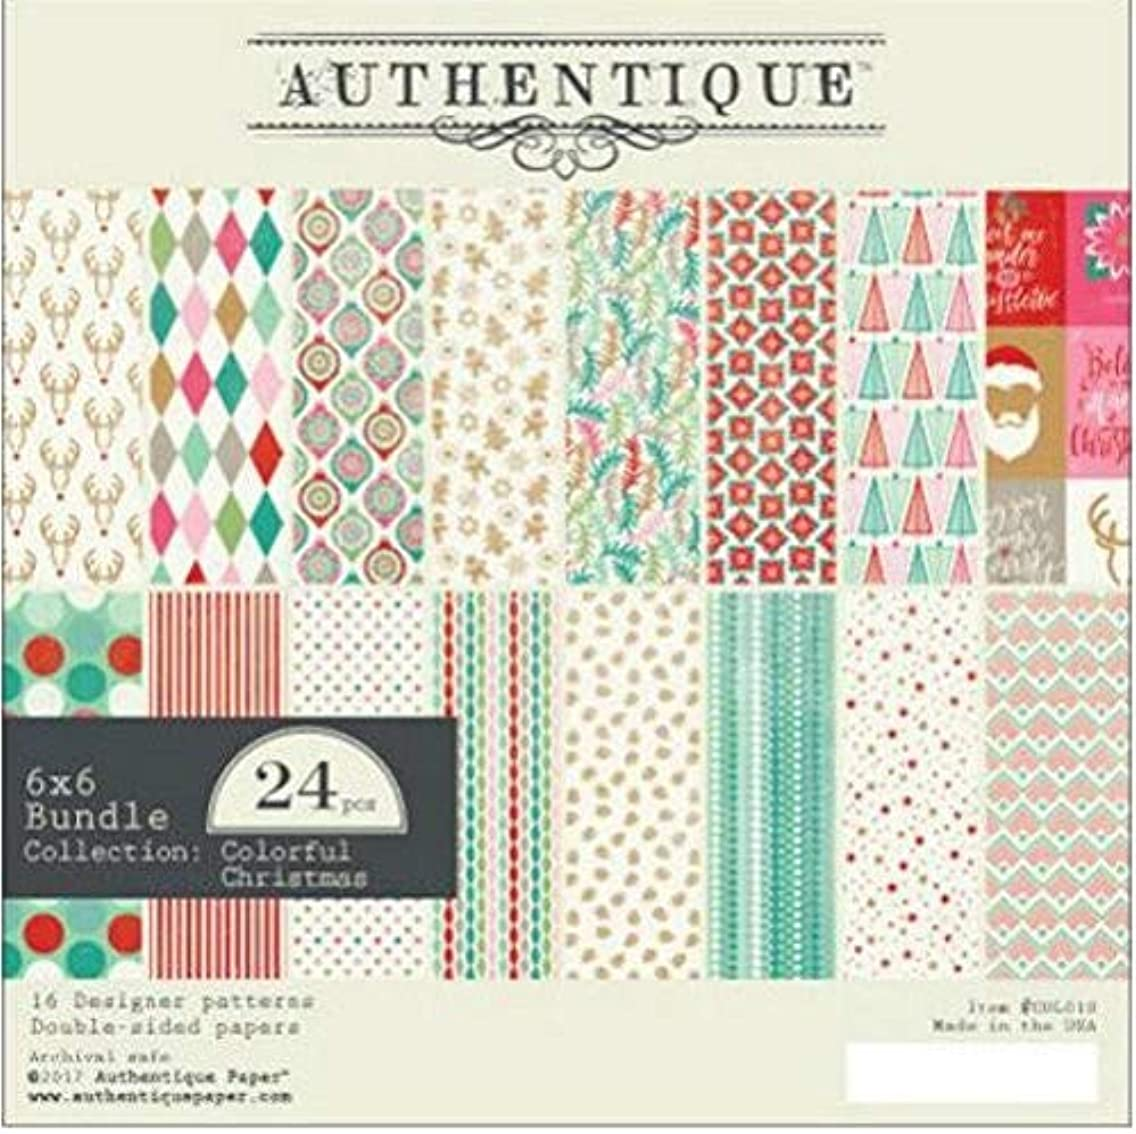 Authentique Paper Authentique Double-Sided Cardstock Pad 6